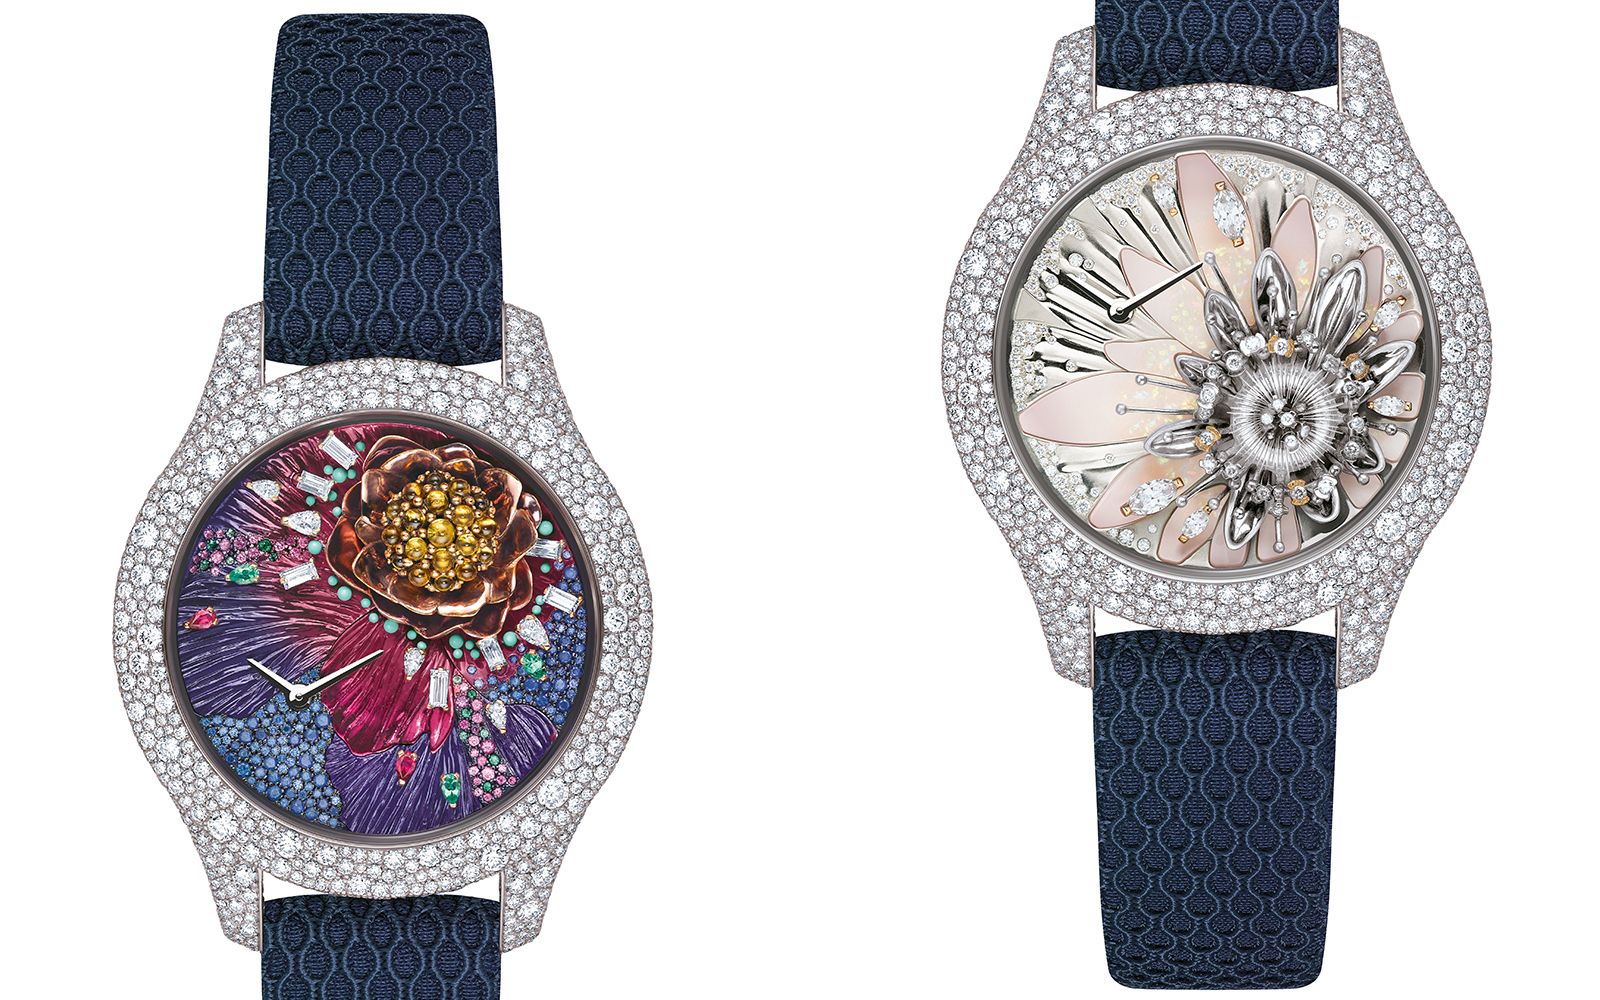 Dior Grand Soir Botanic watches